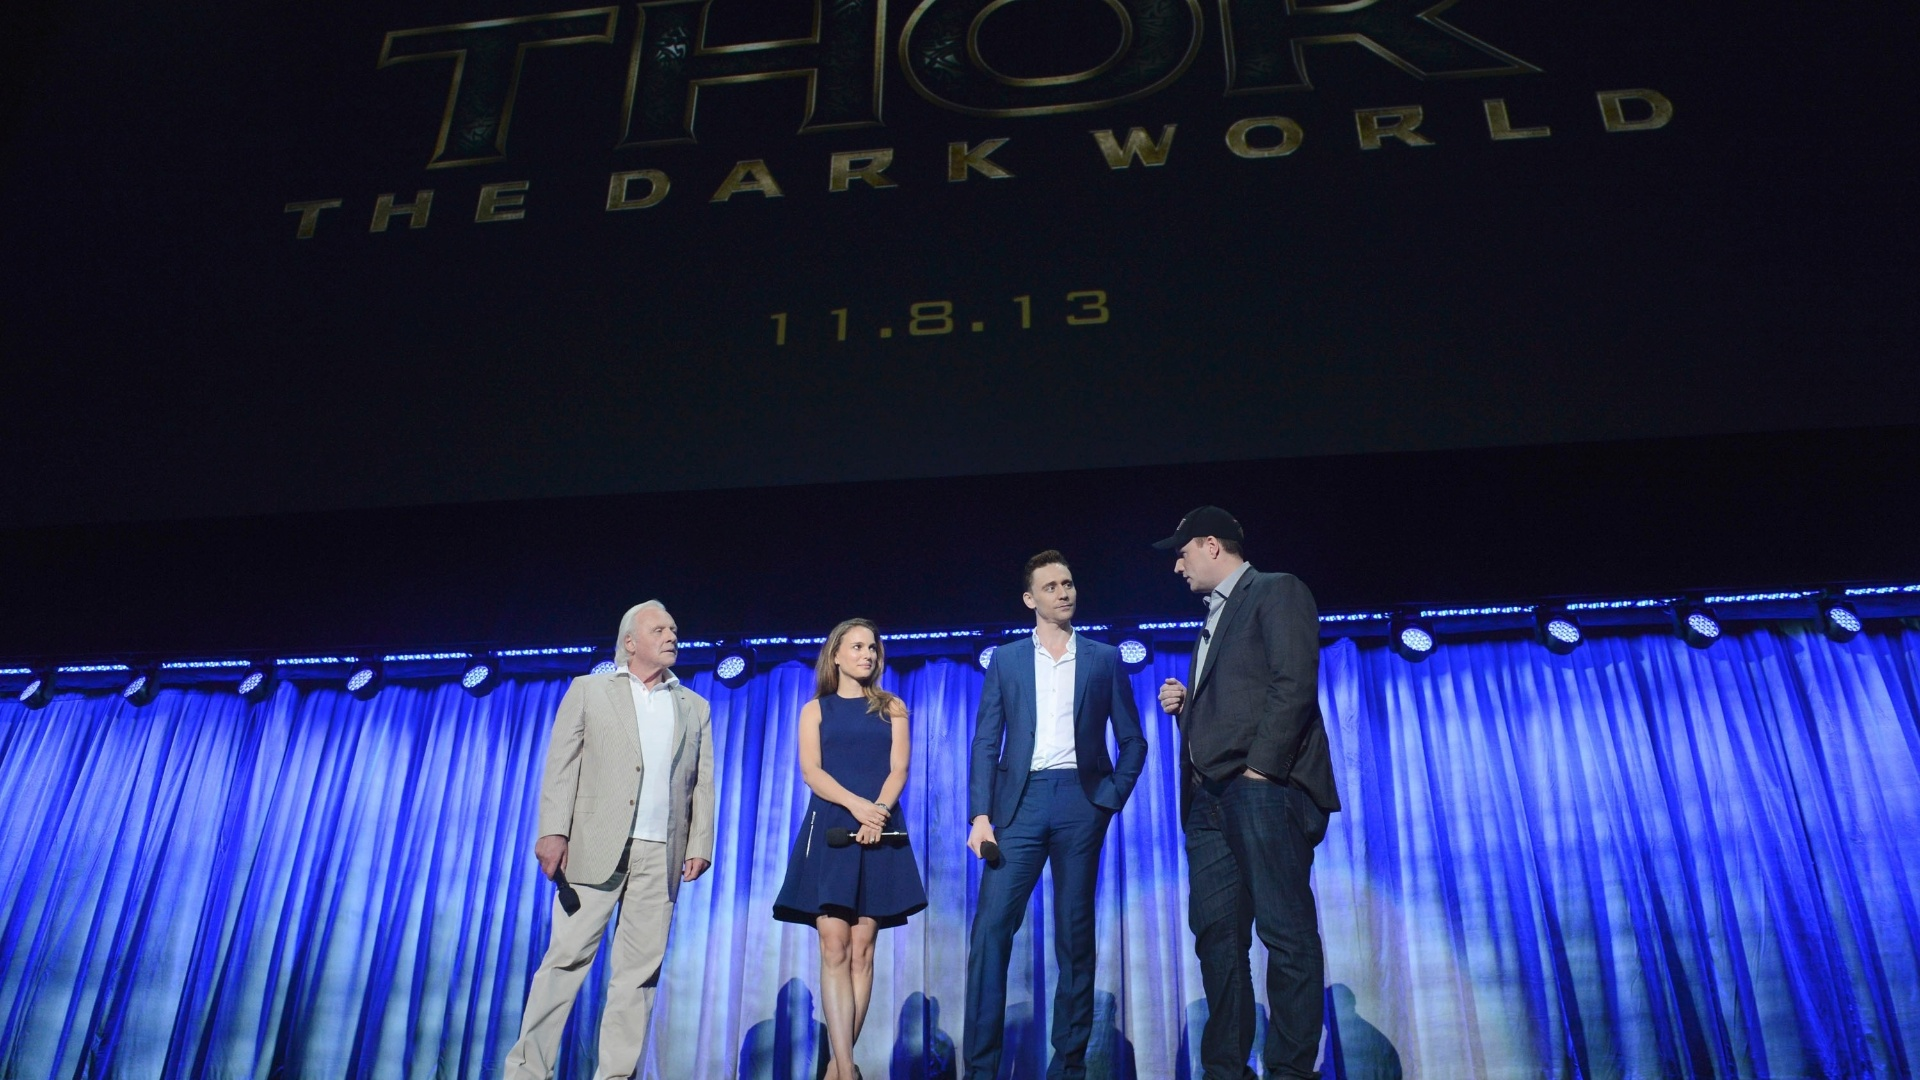 10.ago.2013 - Anthony Hopkins, Natalie Portman e Tom Hiddleston falam sobre